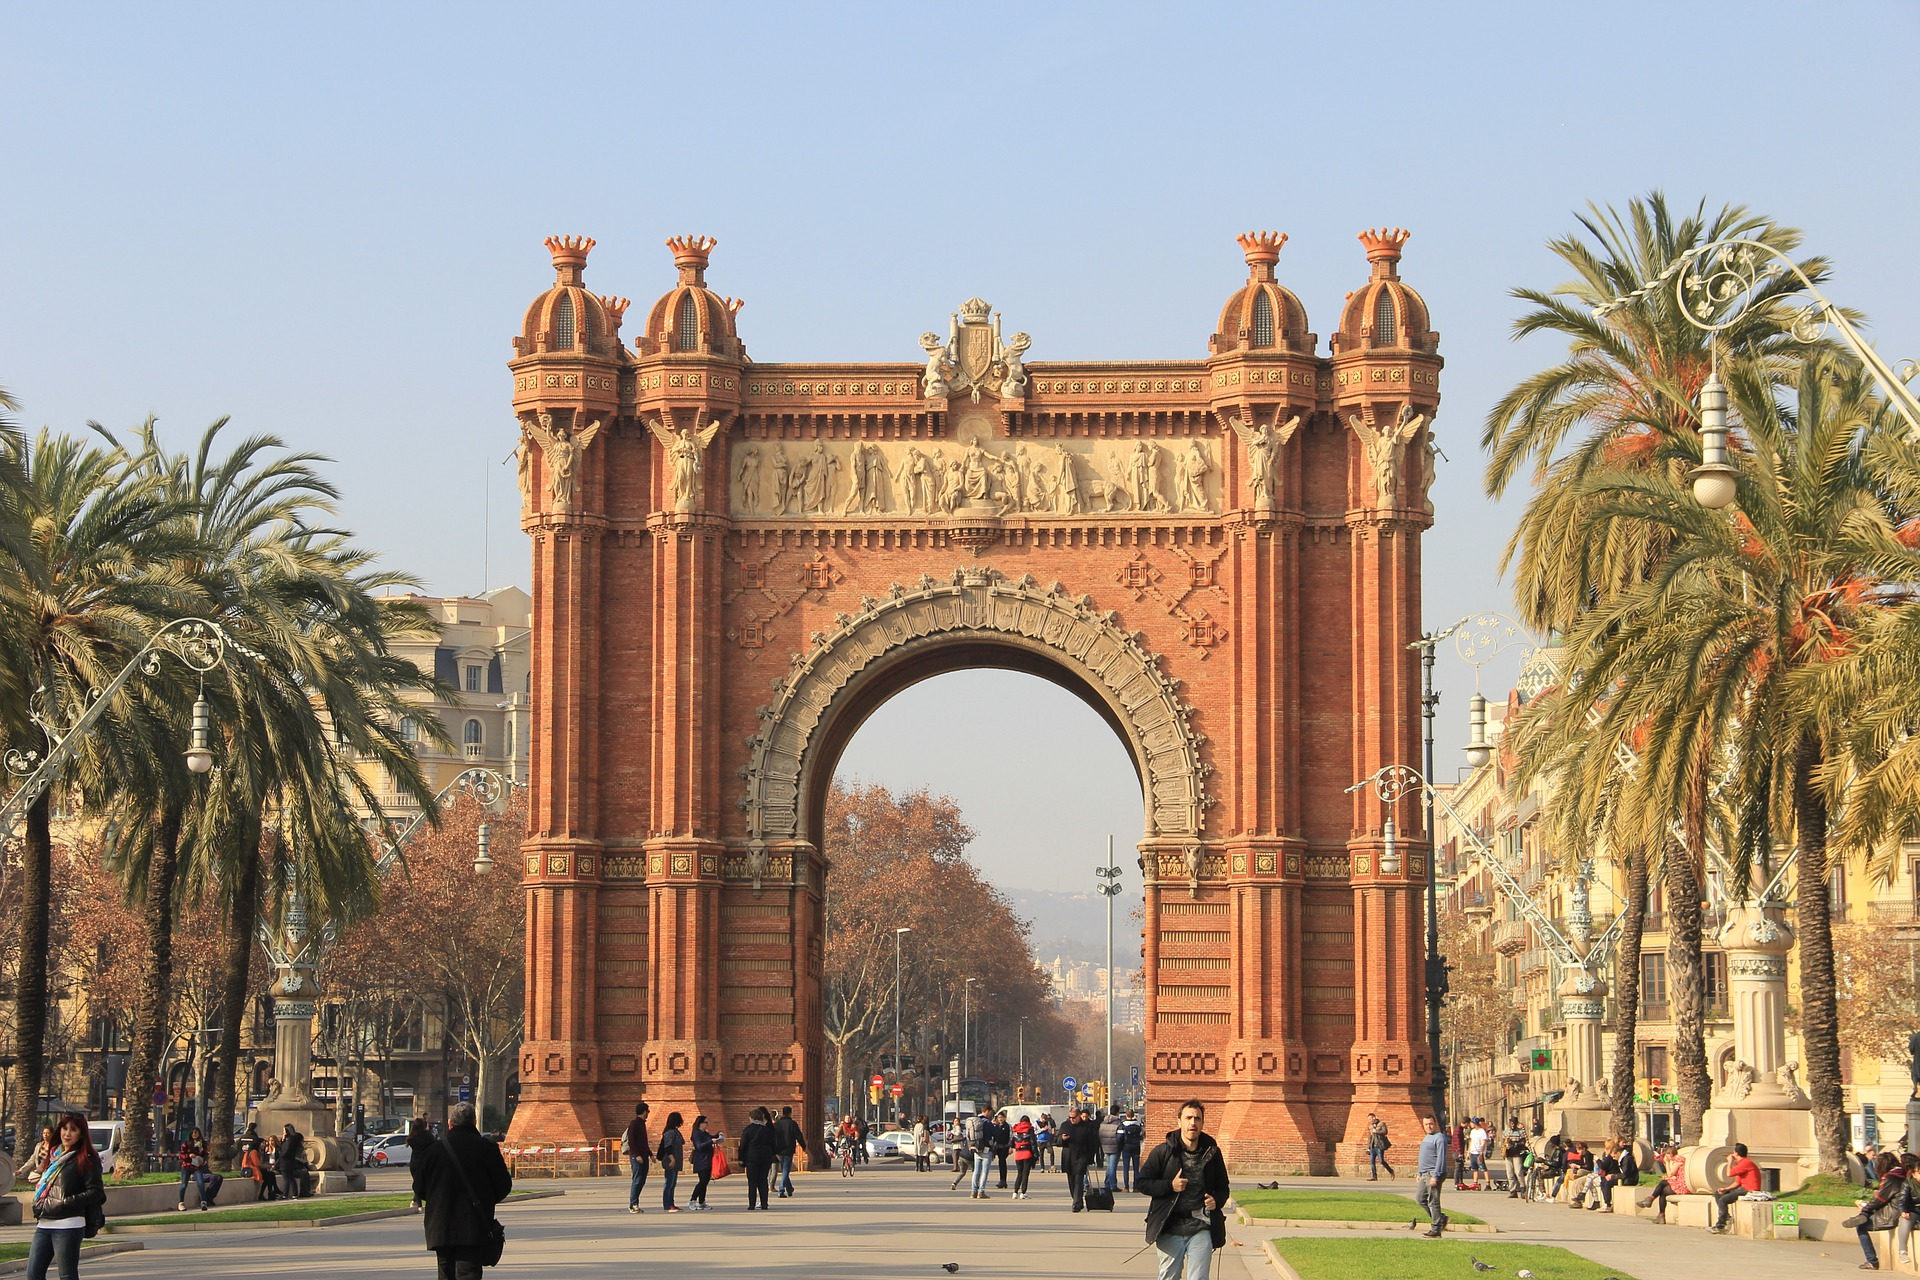 Barcelona will be promoted as a tourist destination accessible for people with disabilities